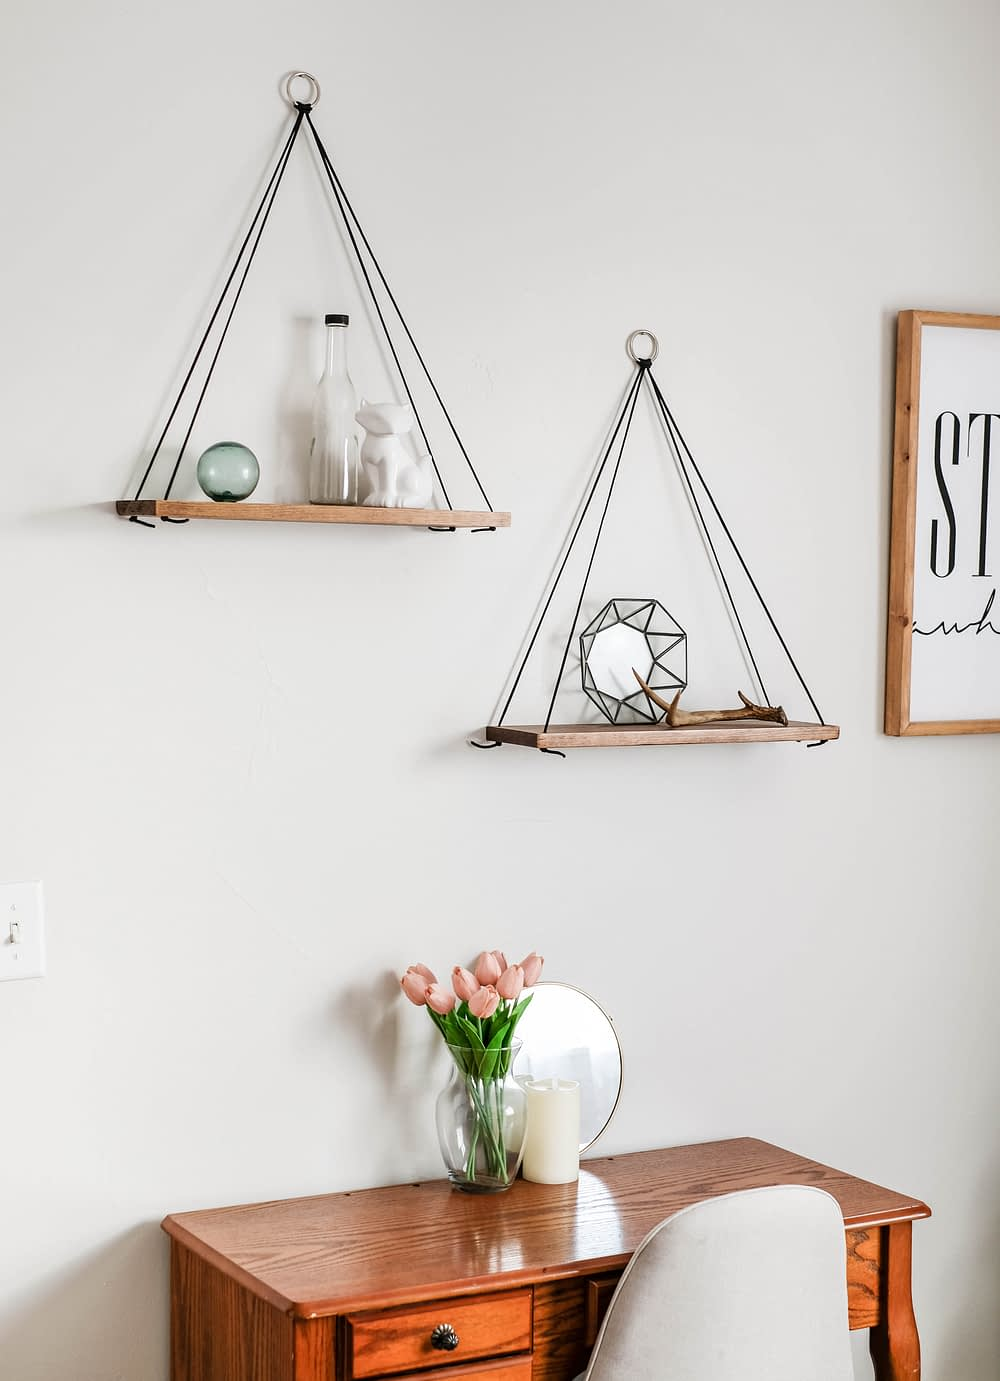 wall hanging shelfs with light bright decor on a white wall